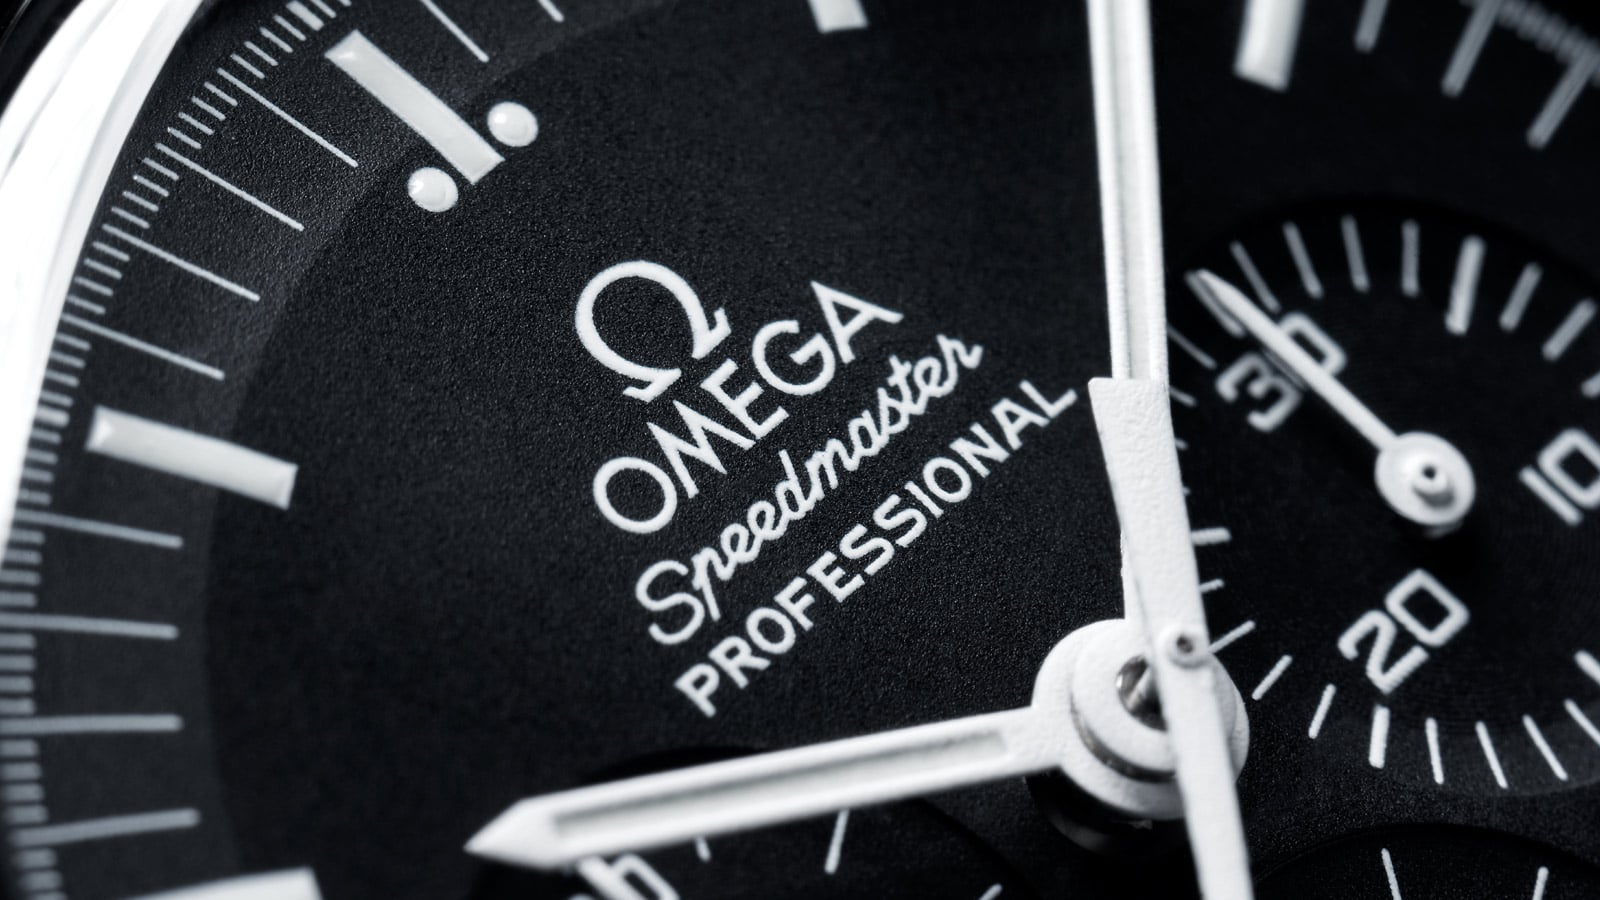 Close-up view of the Omega SPEEDMASTER PROFESSIONAL MOONWATCH white hour and minute hands on a black dial